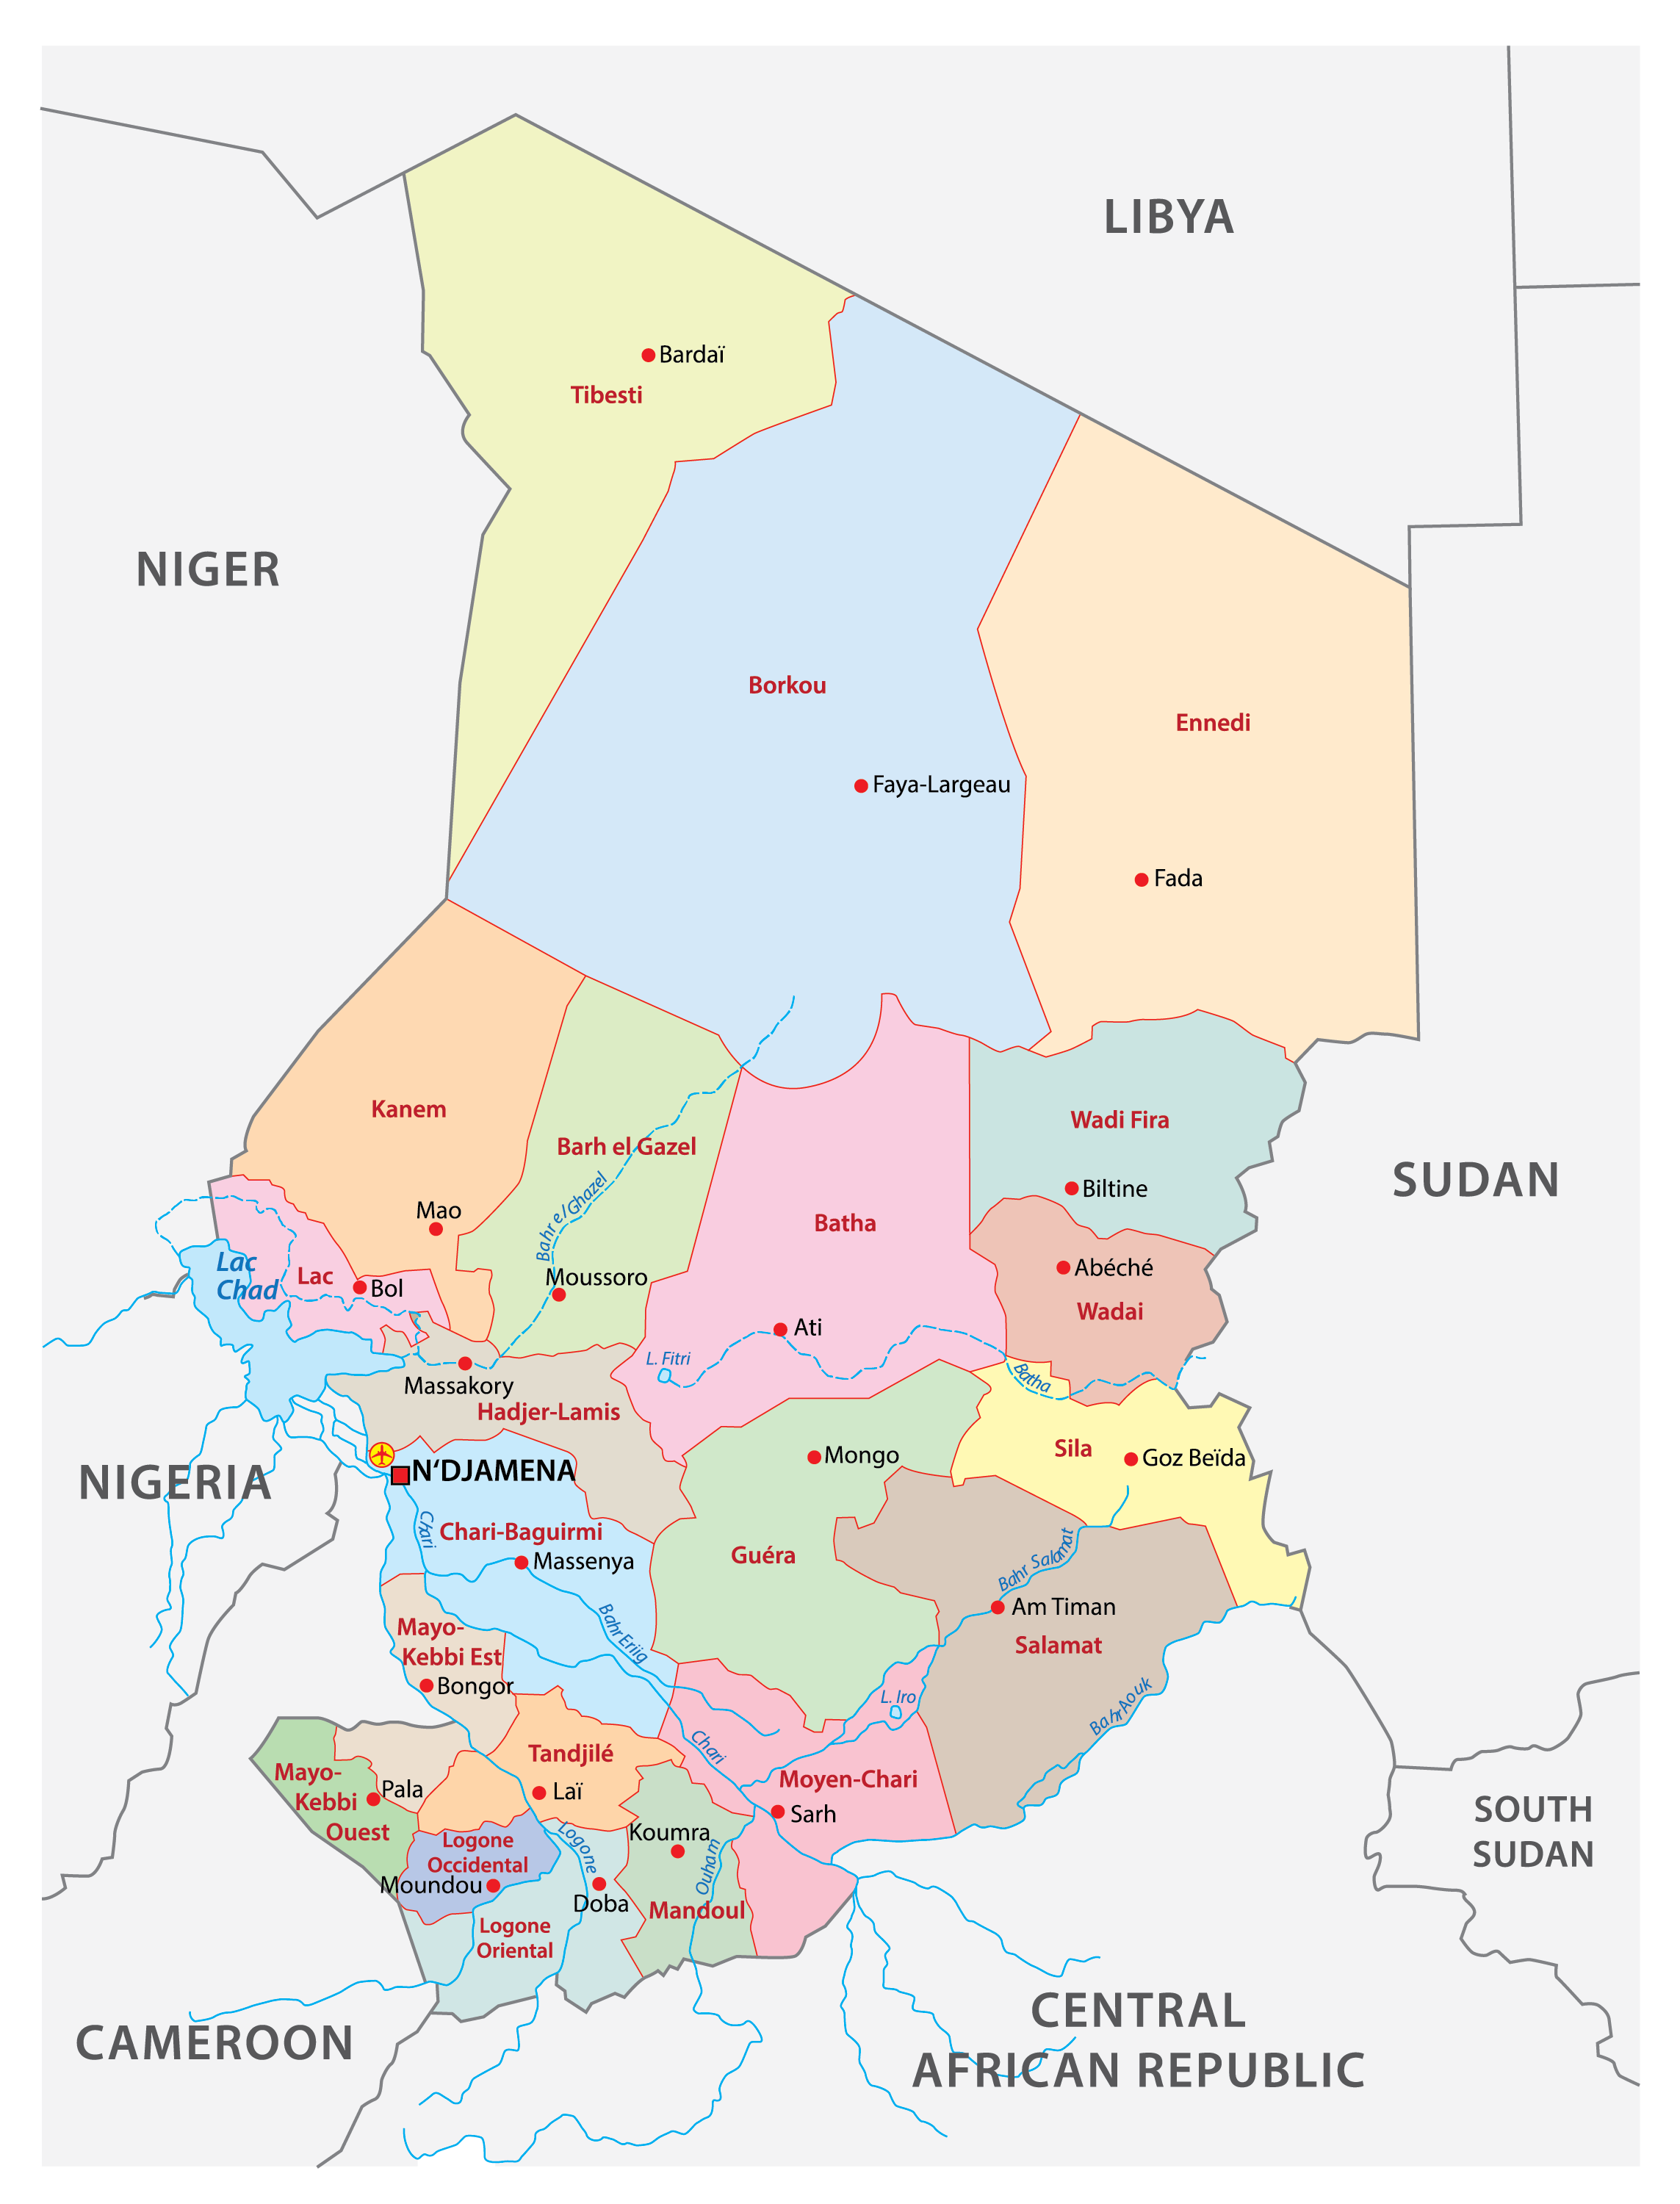 Political map of Chad showing the 23 regions of the country, their capital cities including the national capital of N'Djamena.